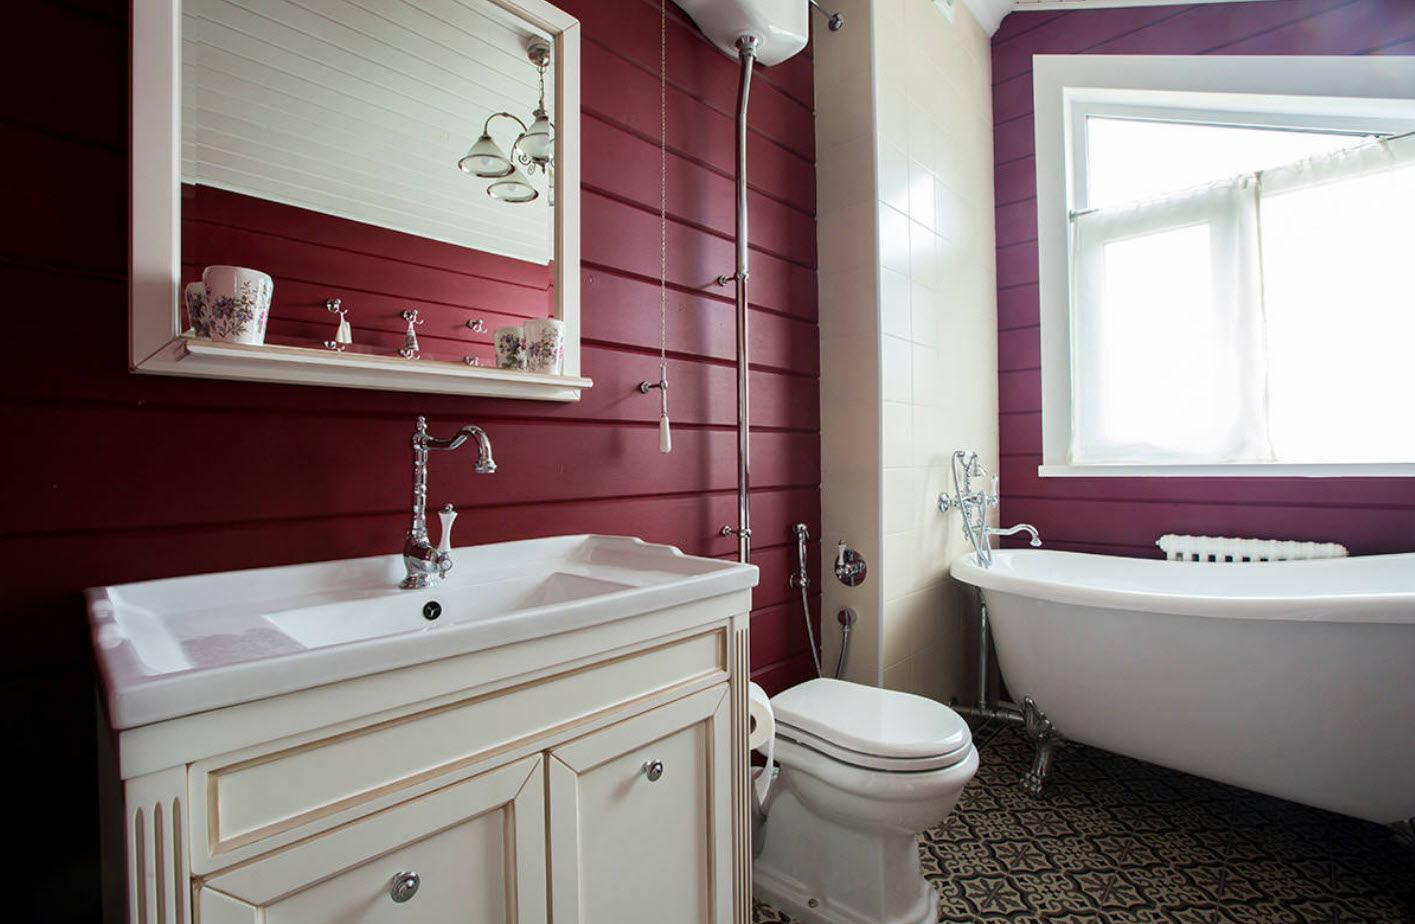 Bathroom Wall Finishing Materials Overview. Dark red walls and creamy white fruniture